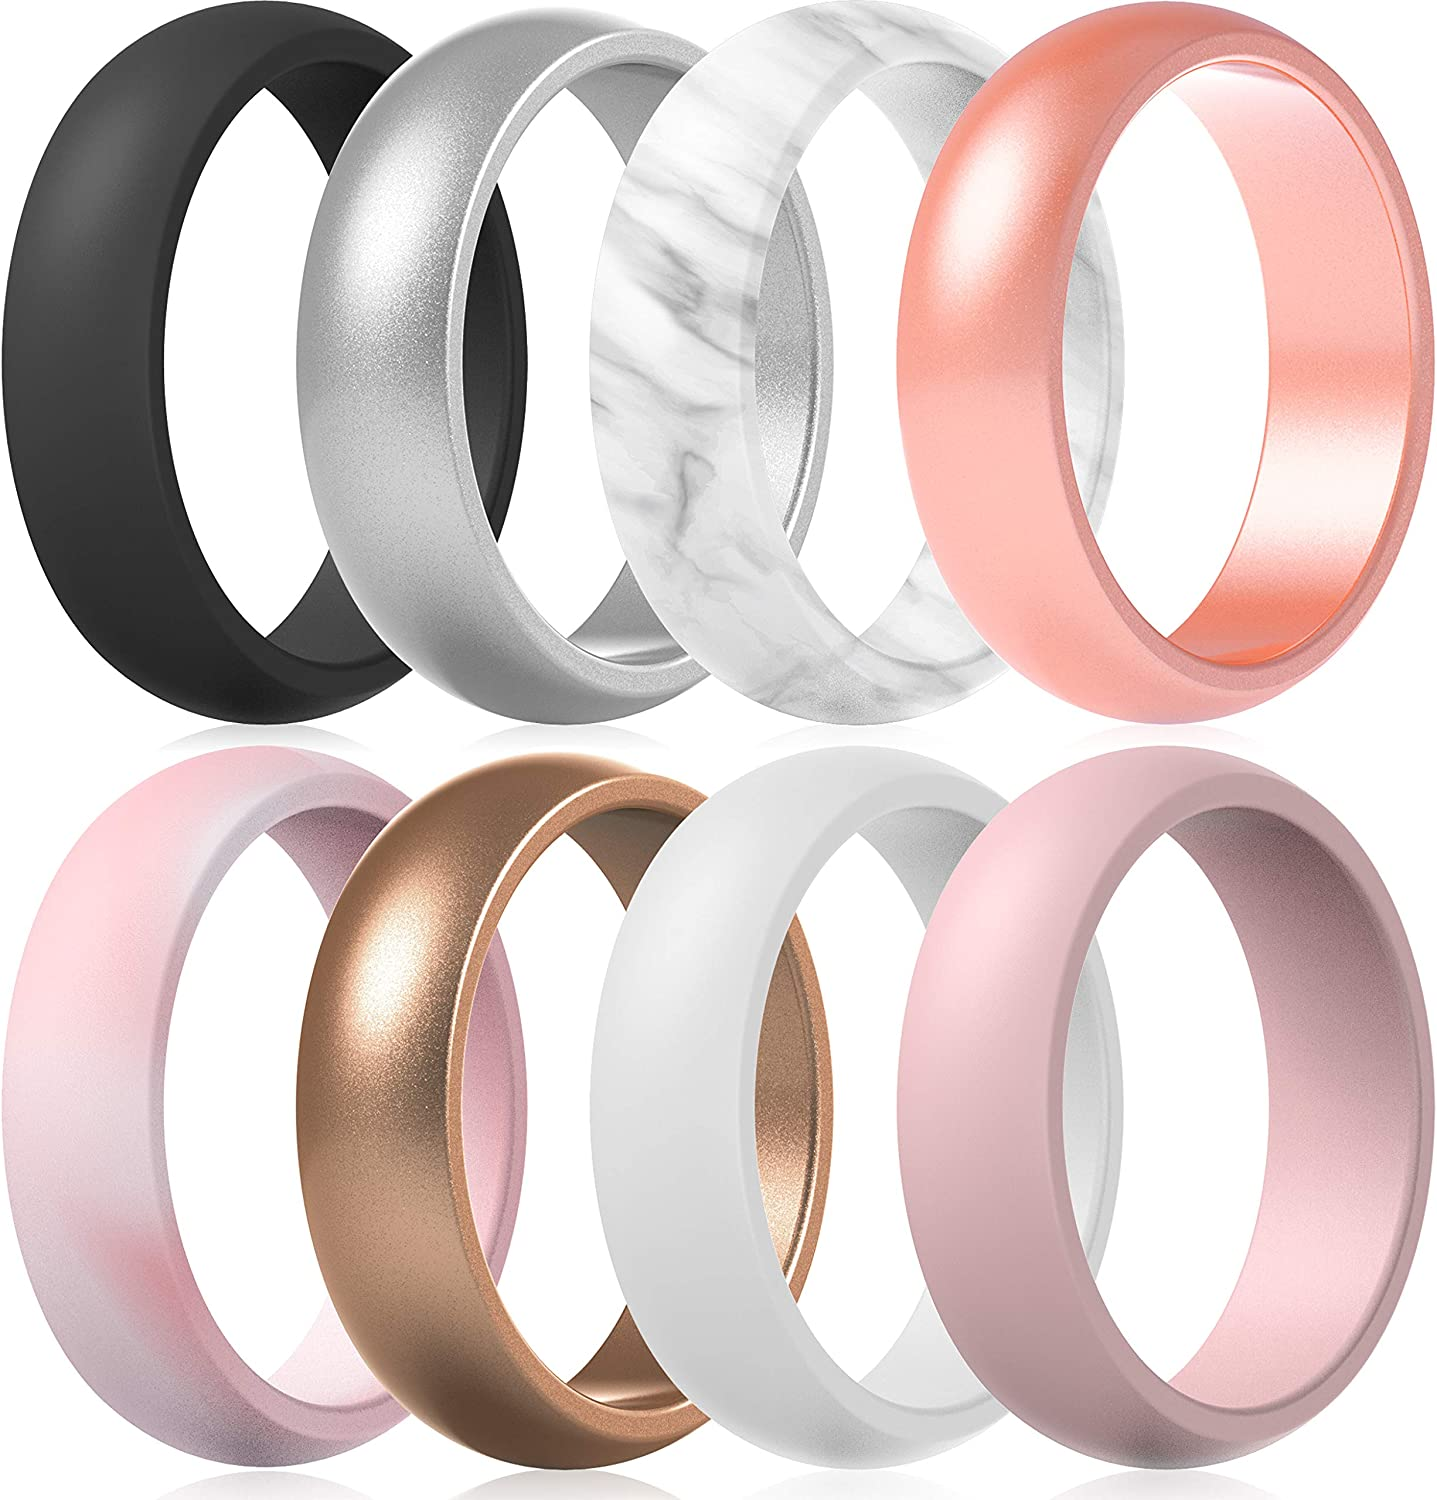 ThunderFit Silicone Wedding Bands for New color Dome Women Wide 5.5mm - A surprise price is realized